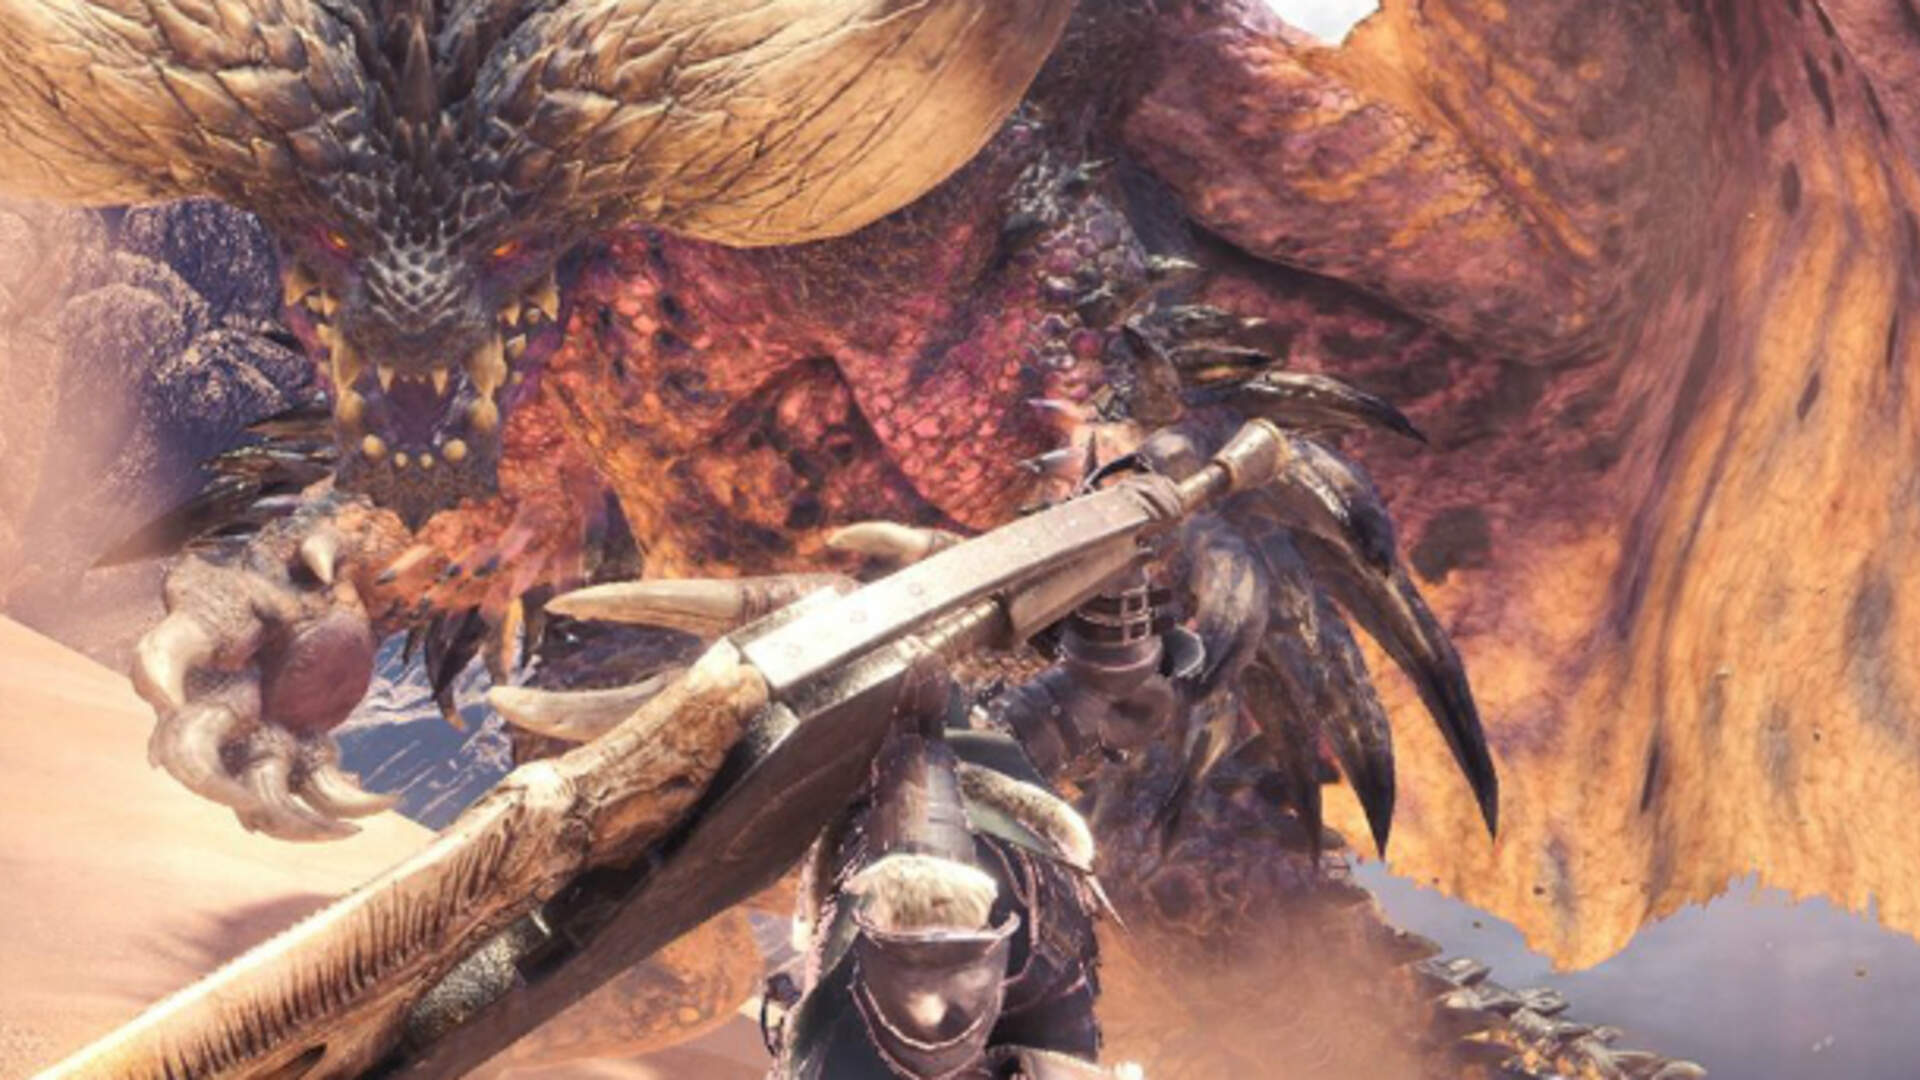 Monster Hunter: World Matchmaking Currently Unavailable on Xbox One [Update: Microsoft and Capcom are Working on a Patch]